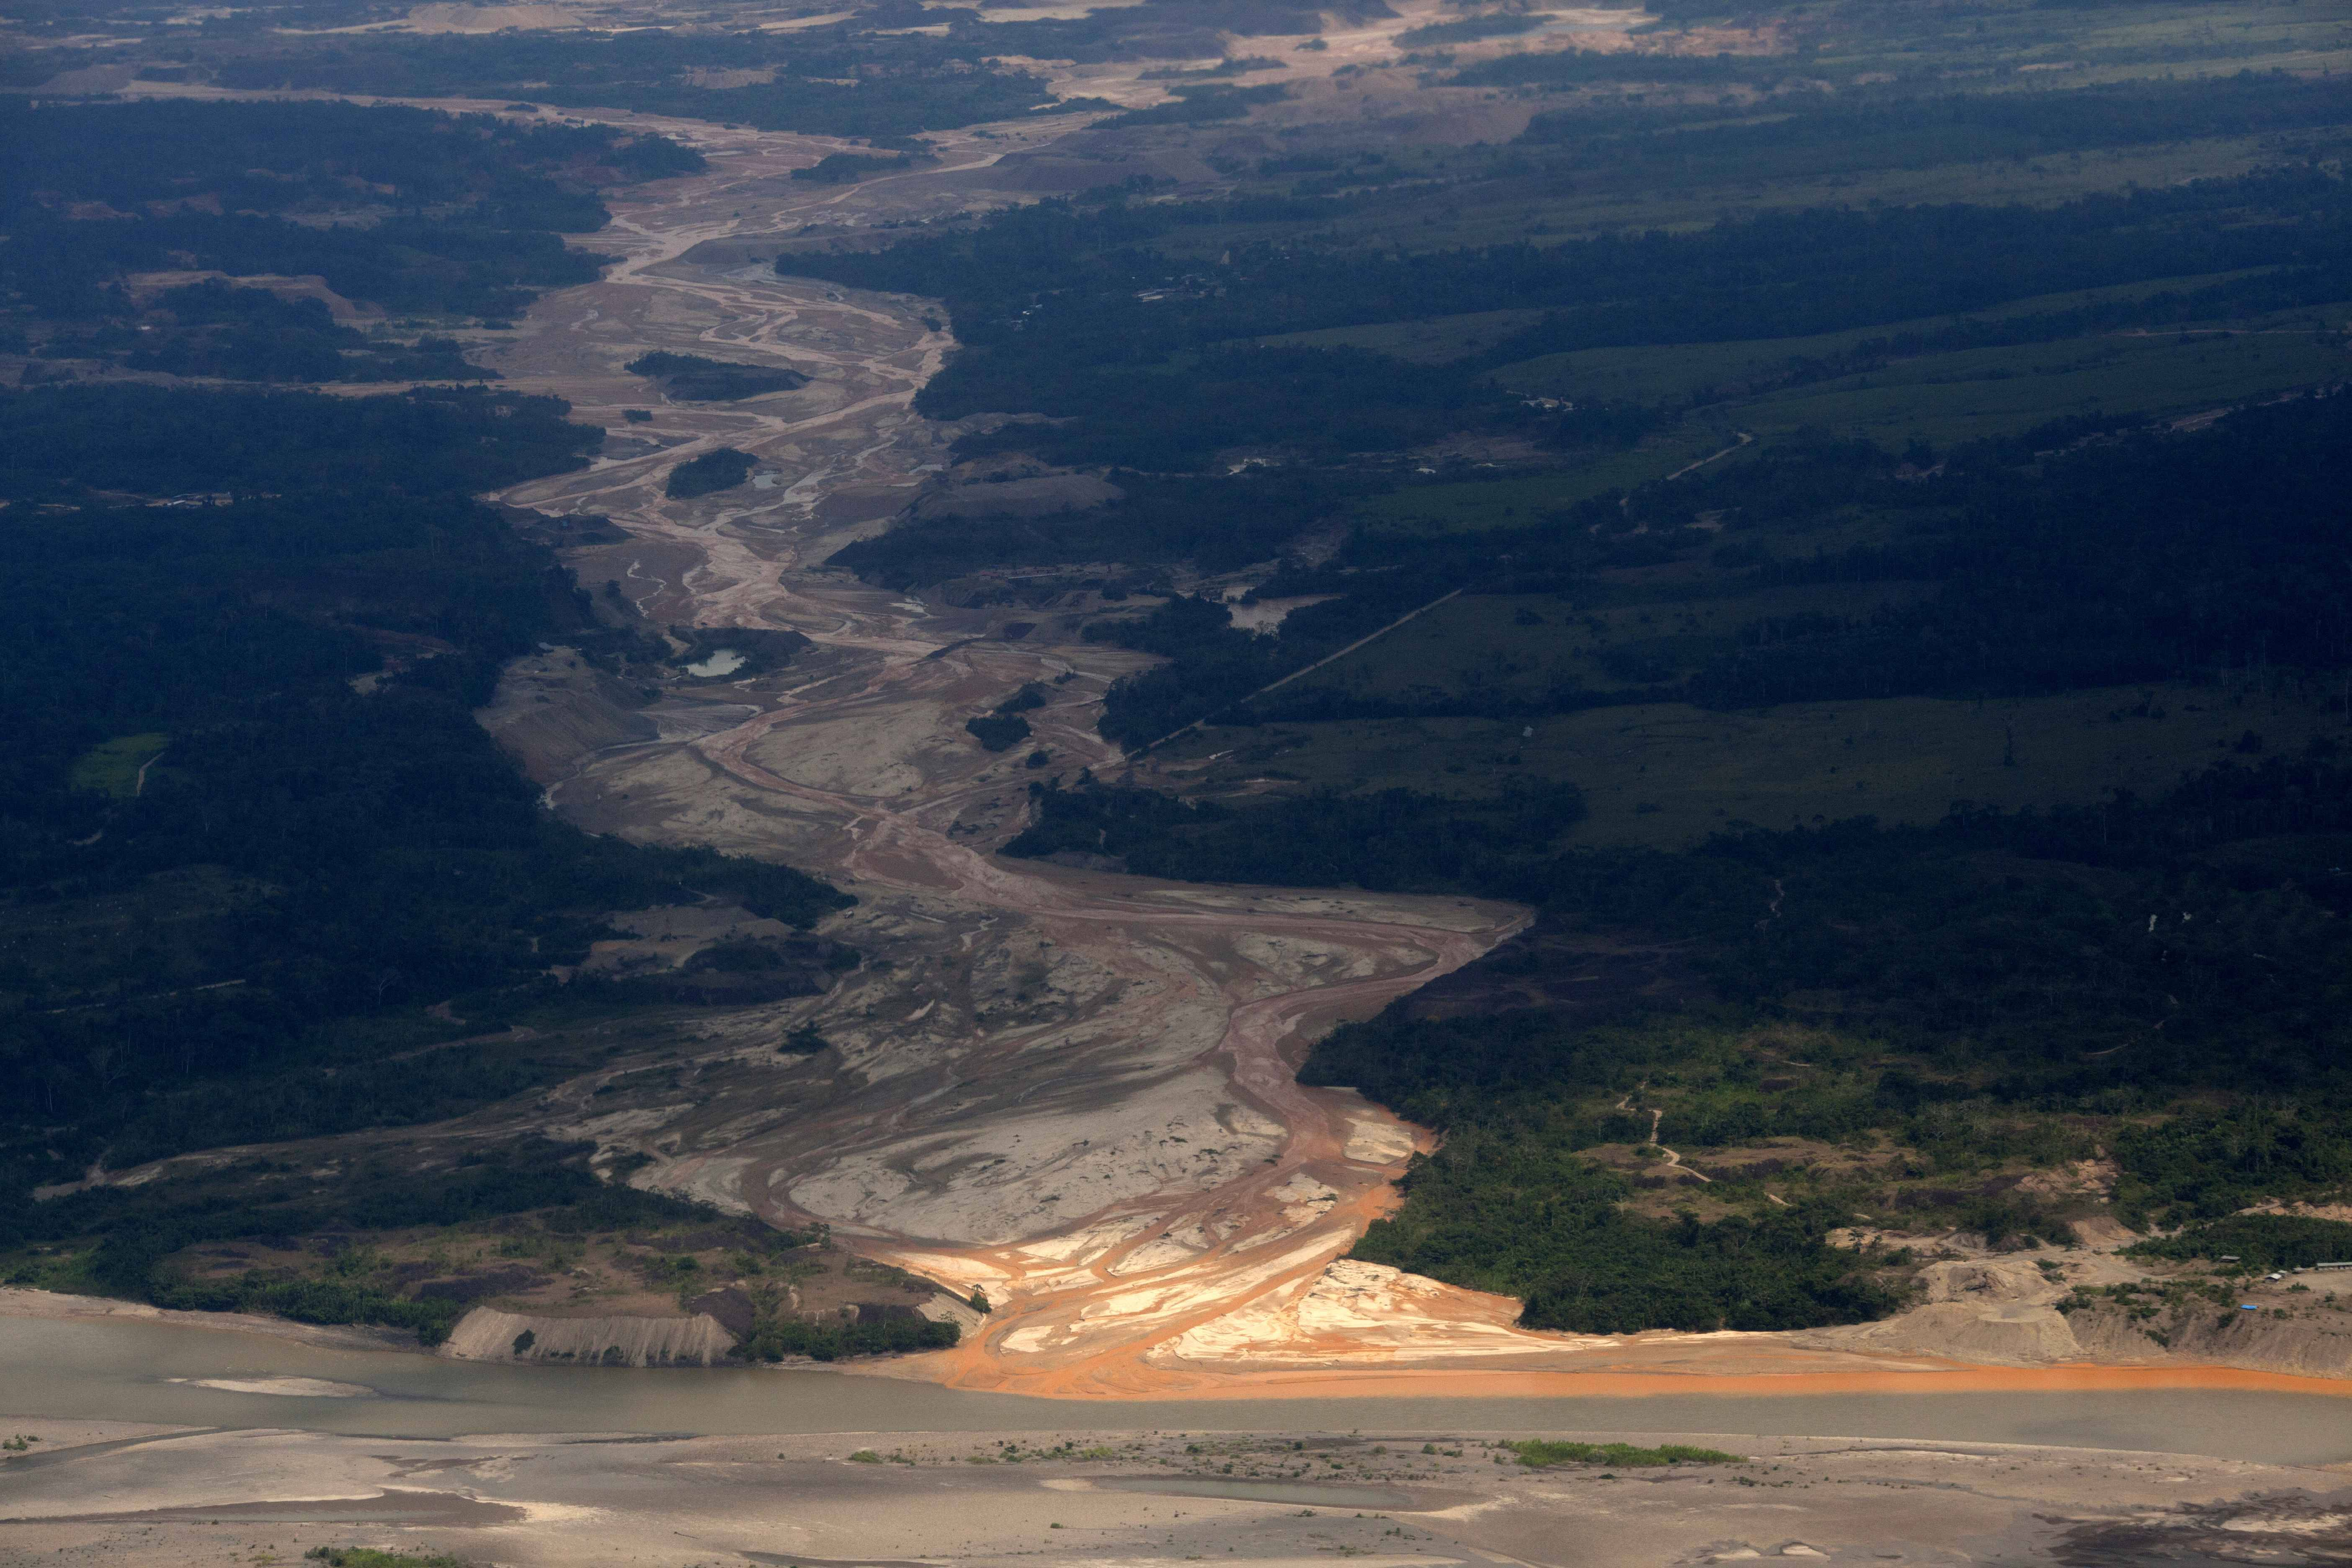 Aerial photo shows a river polluted by waste from informal mining in Peru's Madre de Dios region.